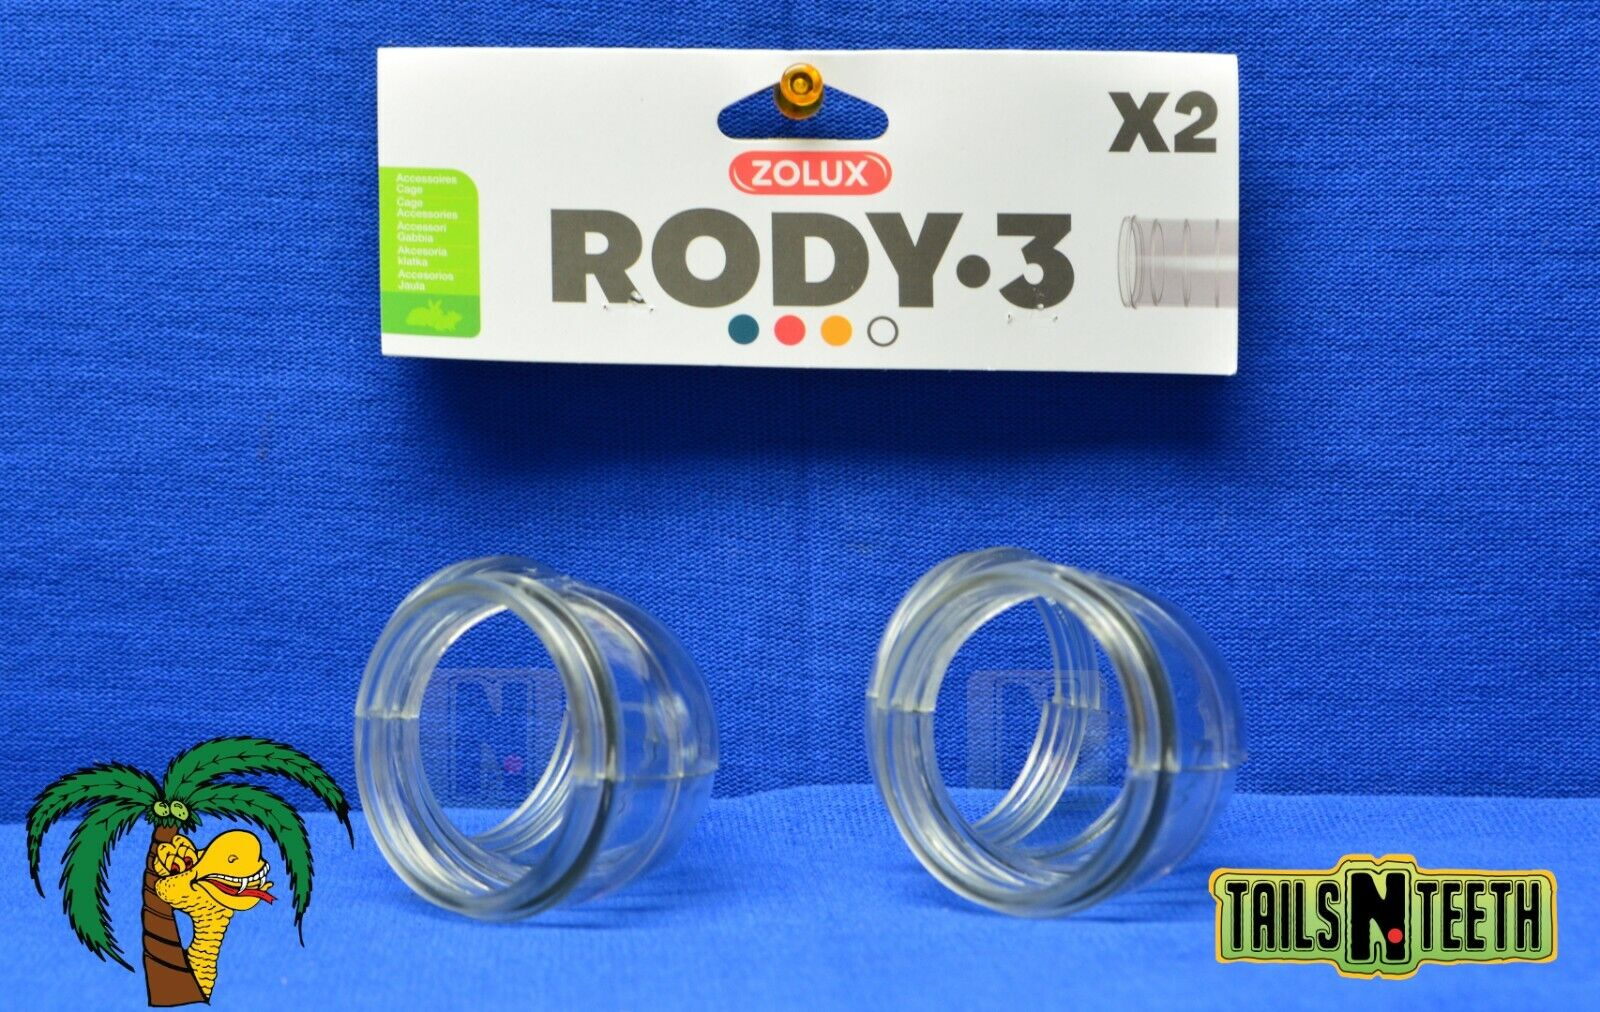 Zolux RODY-3 Angle Tube For Rody-3 InterConnecting Cages - 2 Pack - CA$3.99